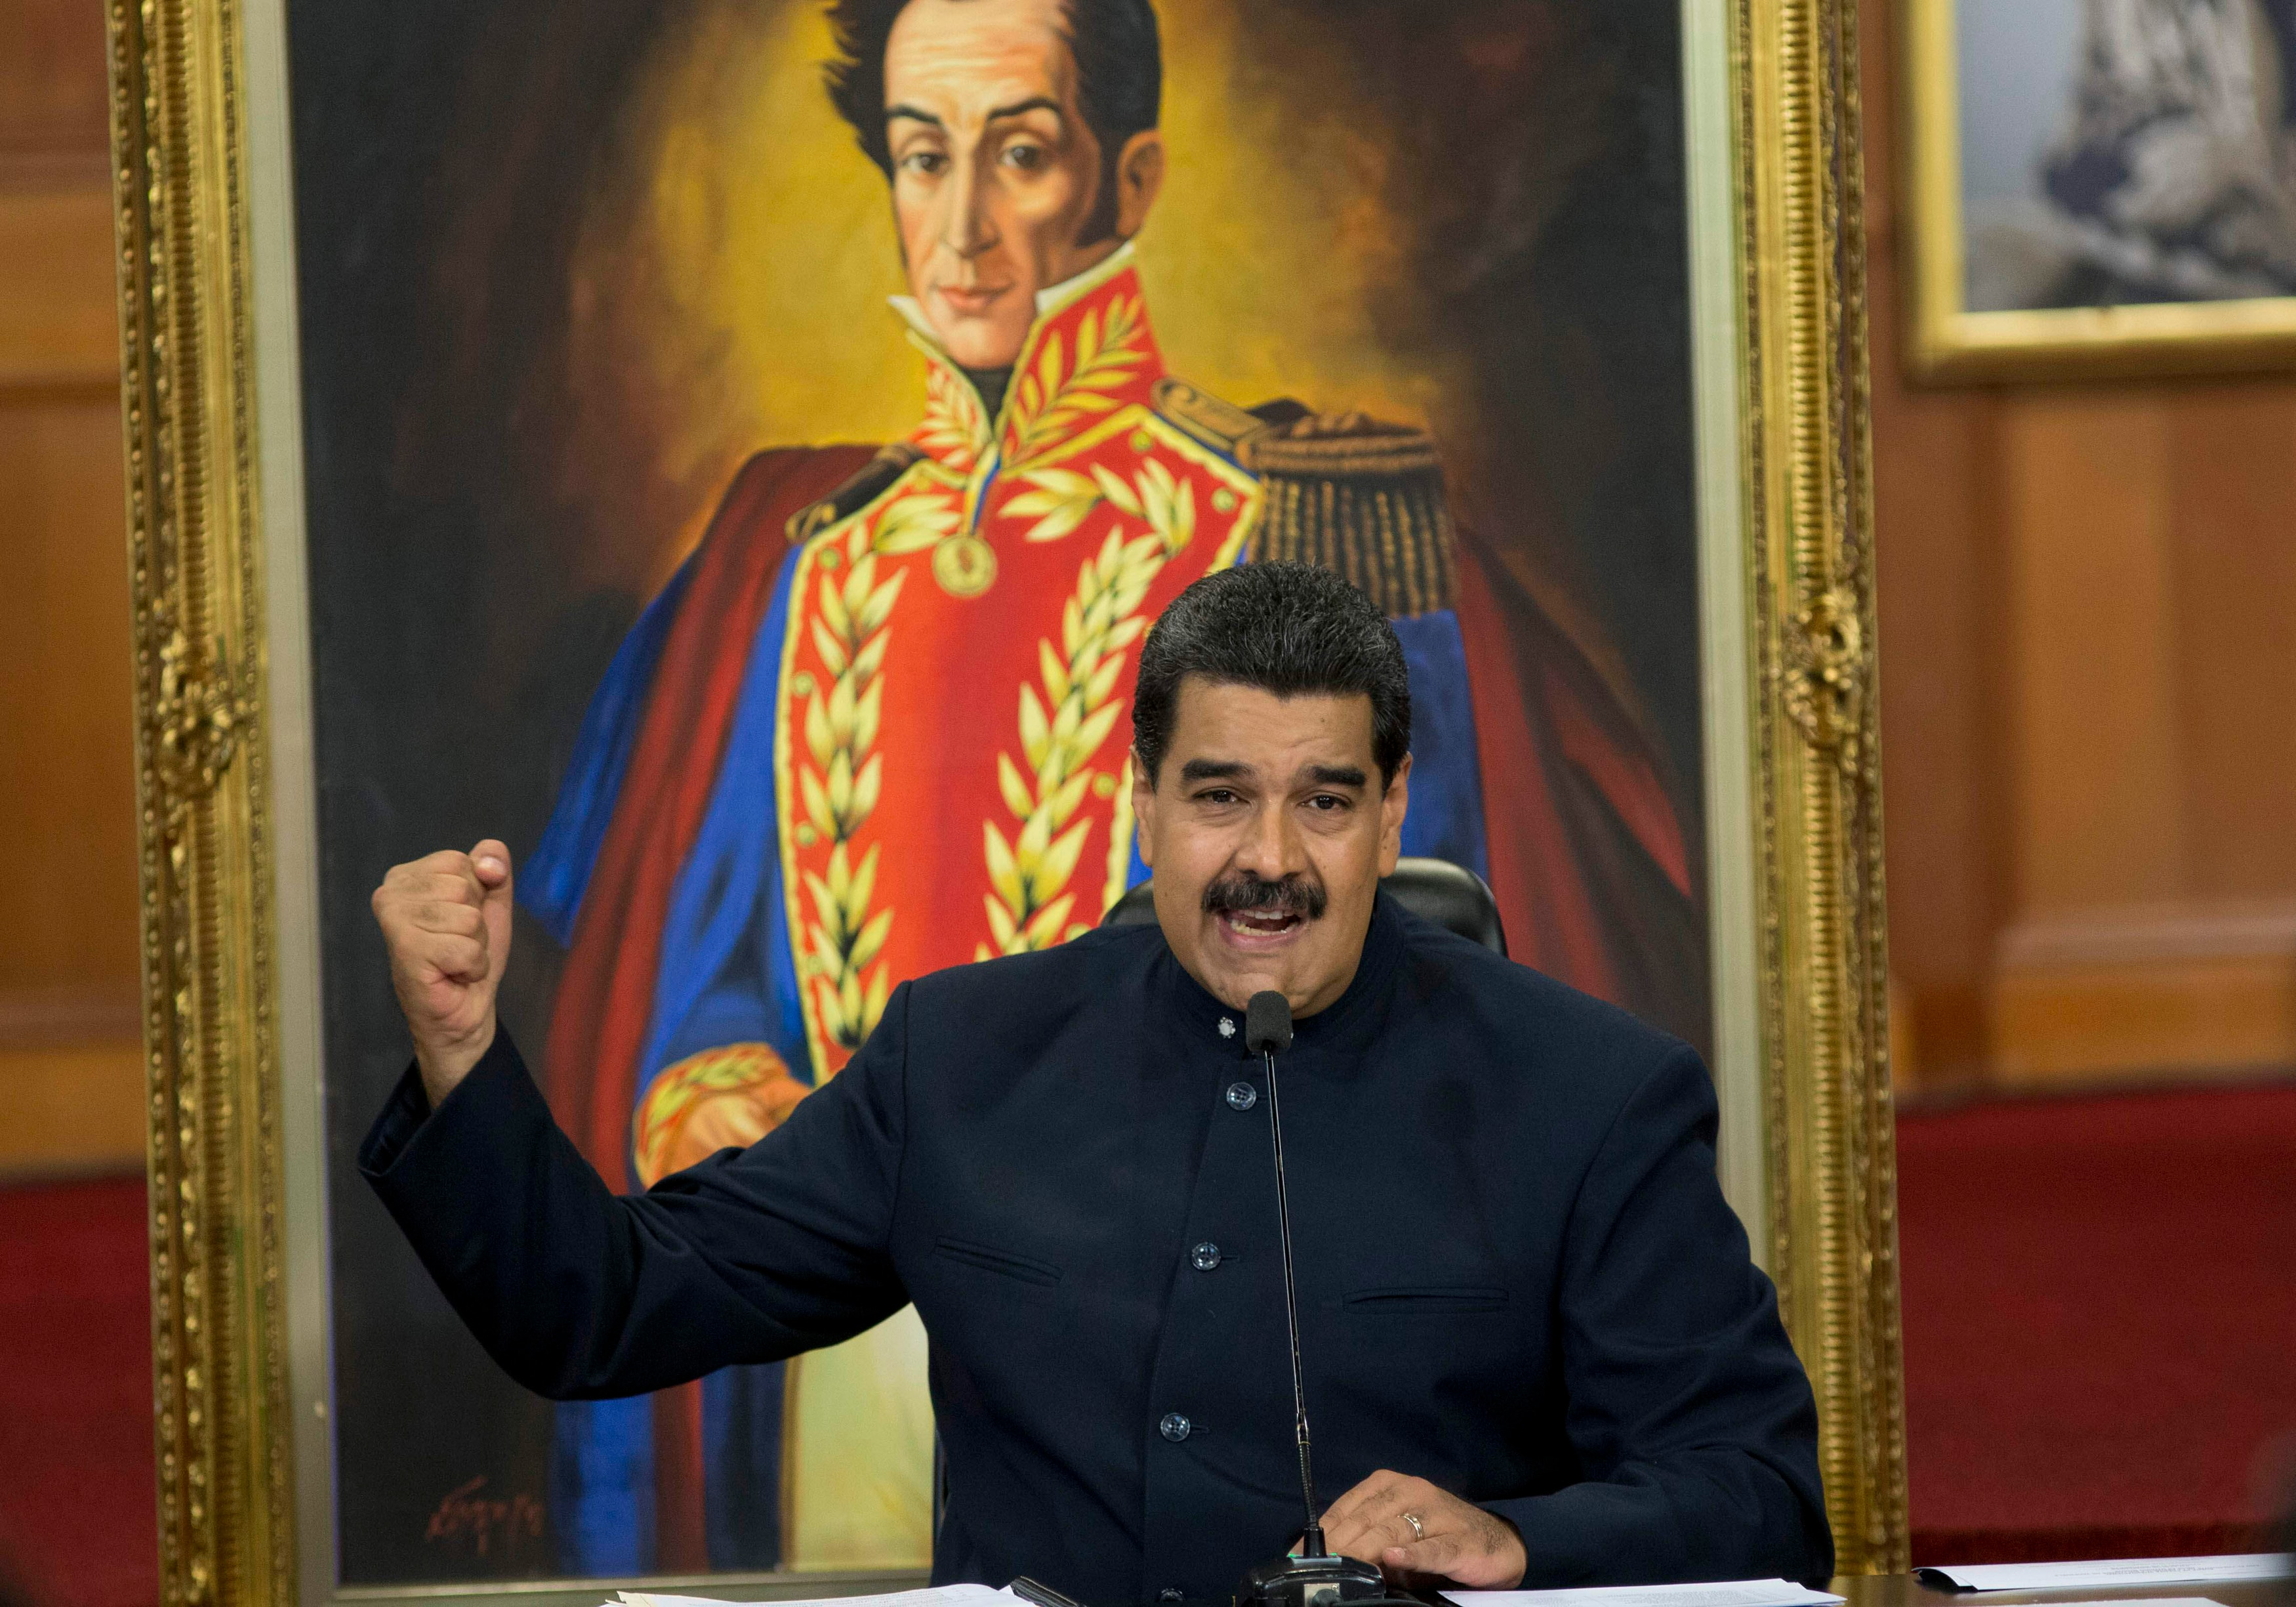 Man at microphone with fist raised, with large portrait of elaborately uniformed man behind him (© Ariana Cubillos/AP Images)